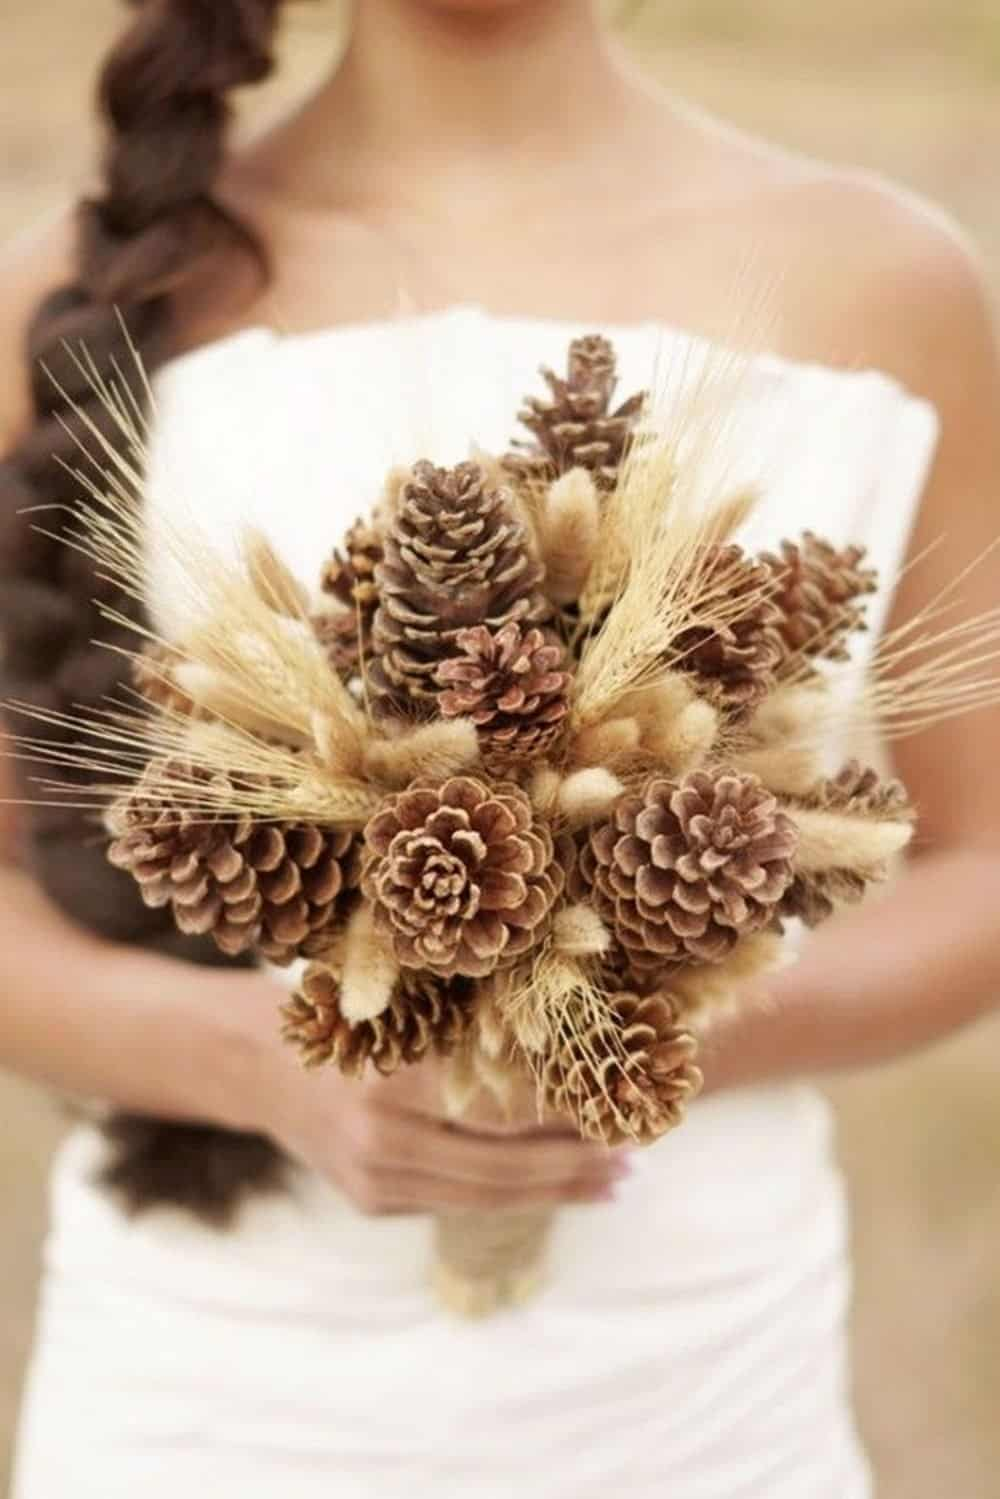 Pinecone and wheat bouquet